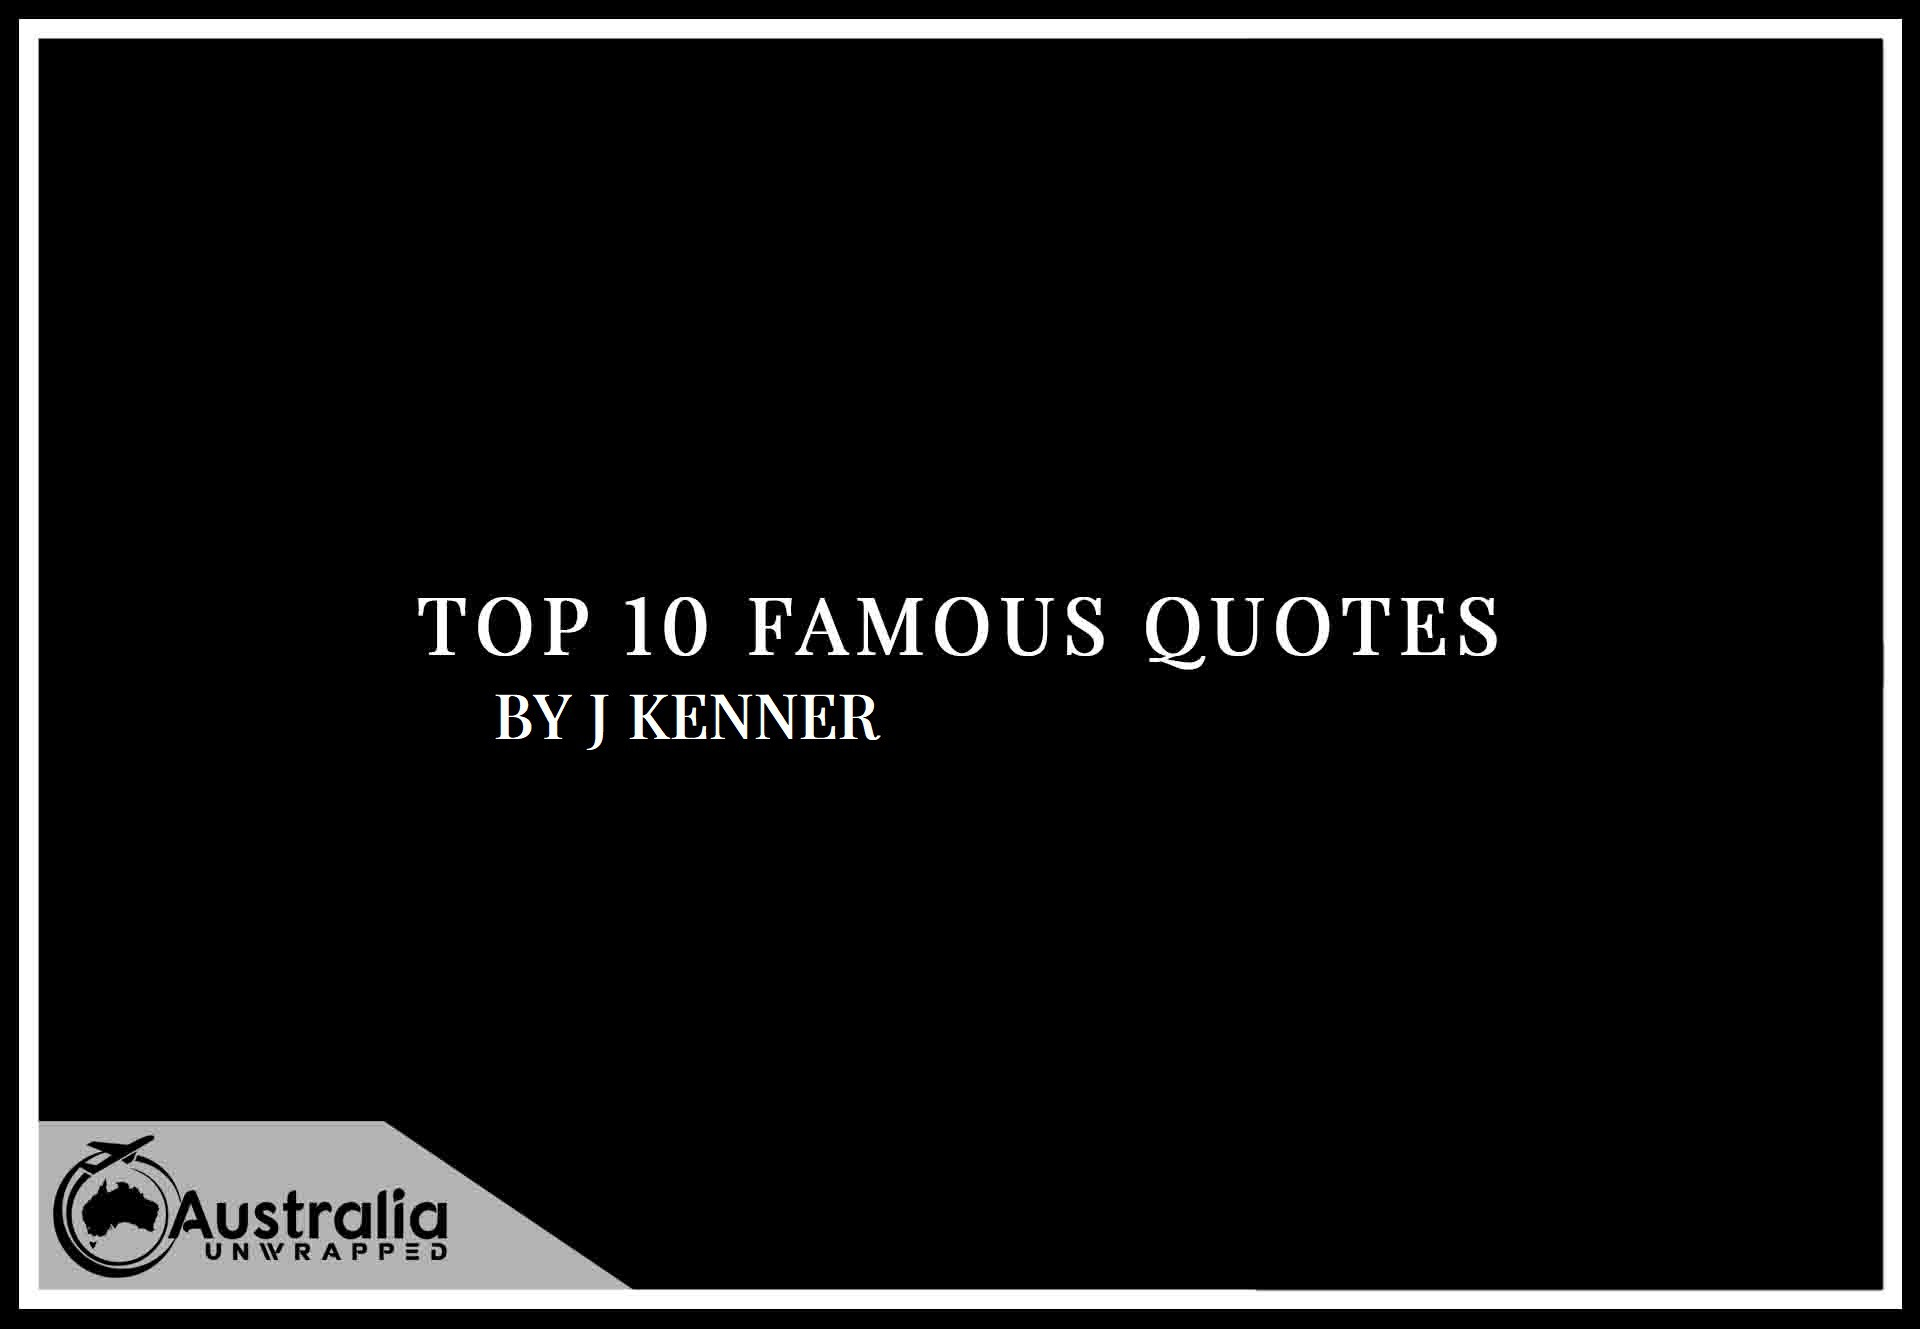 Top 10 Famous Quotes by Author J. Kenner